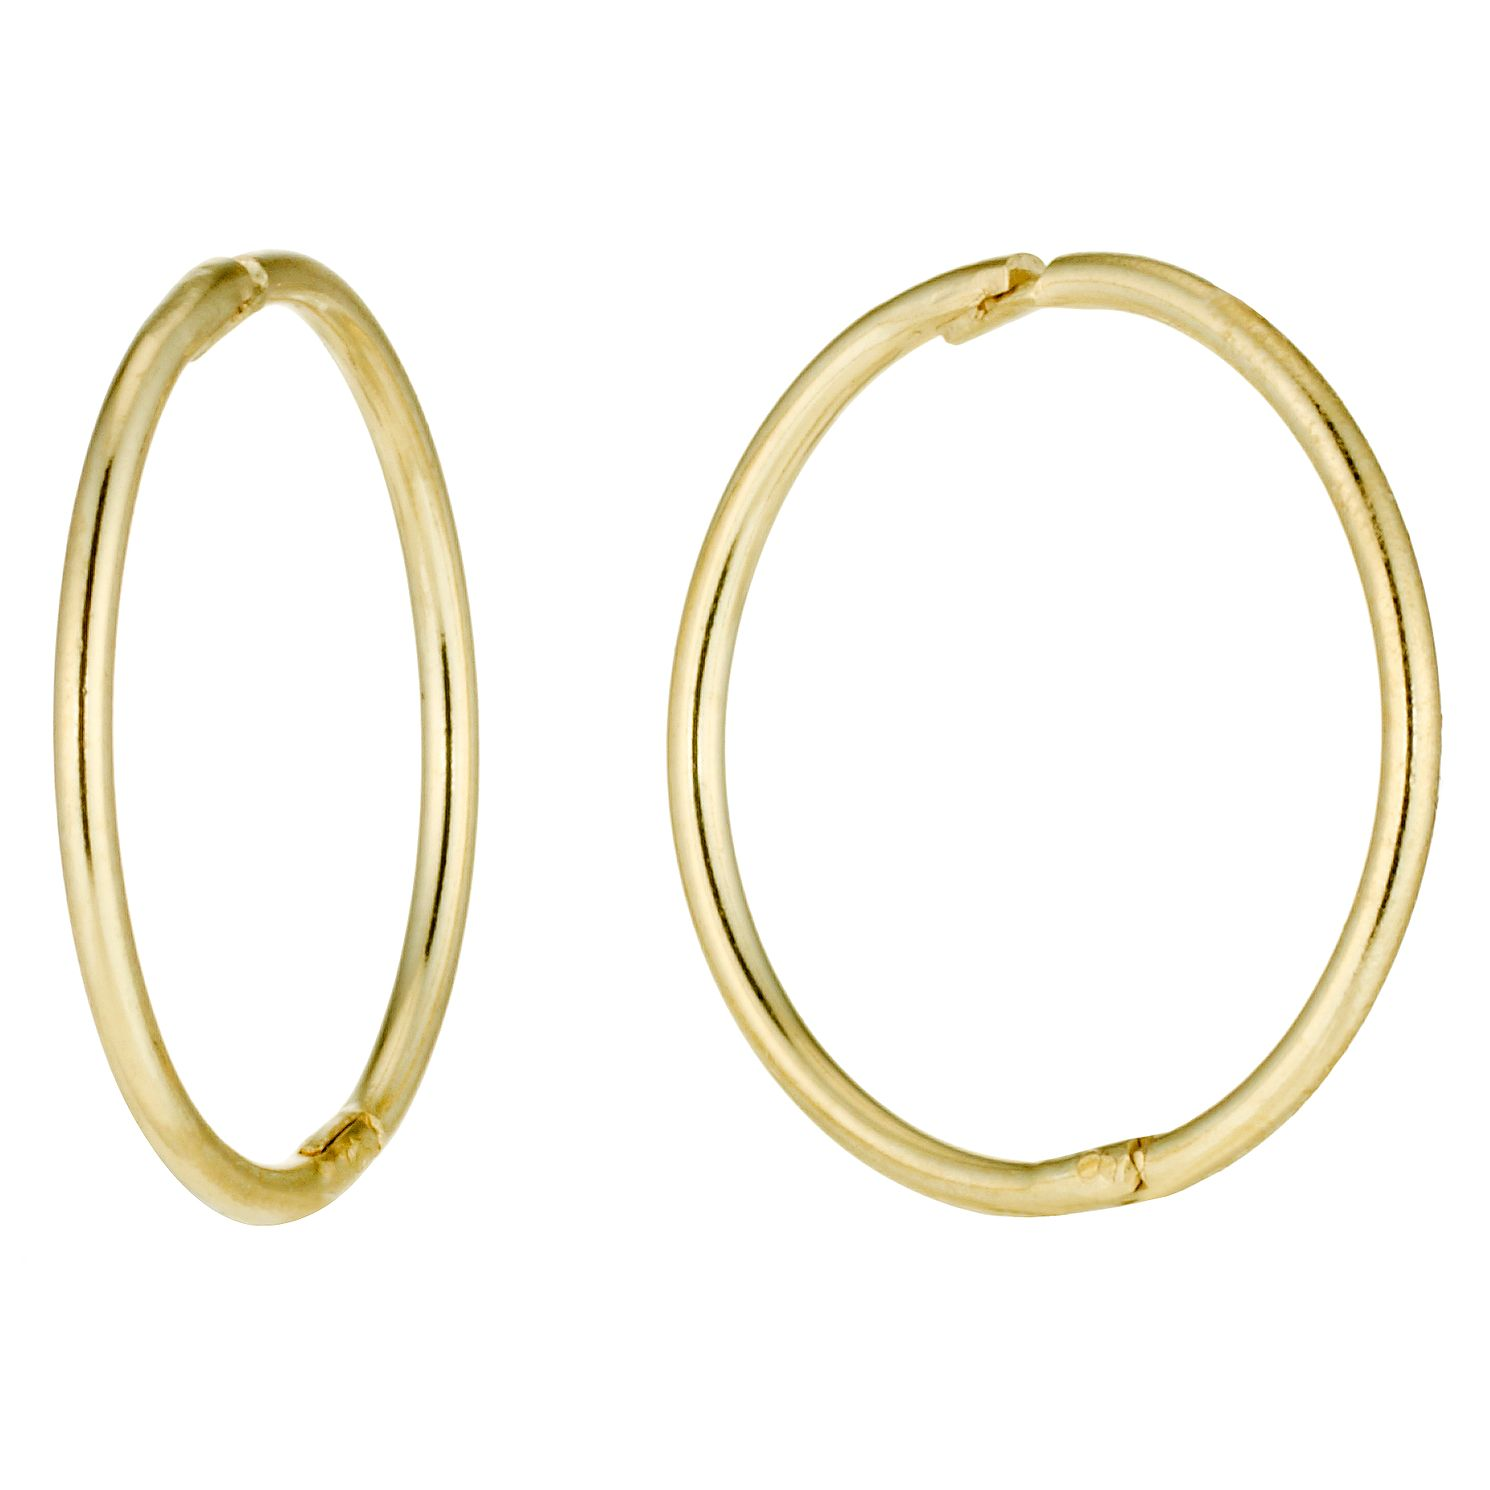 9ct Yellow Gold 12mm Hinged Sleeper Earrings - Product number 2255952